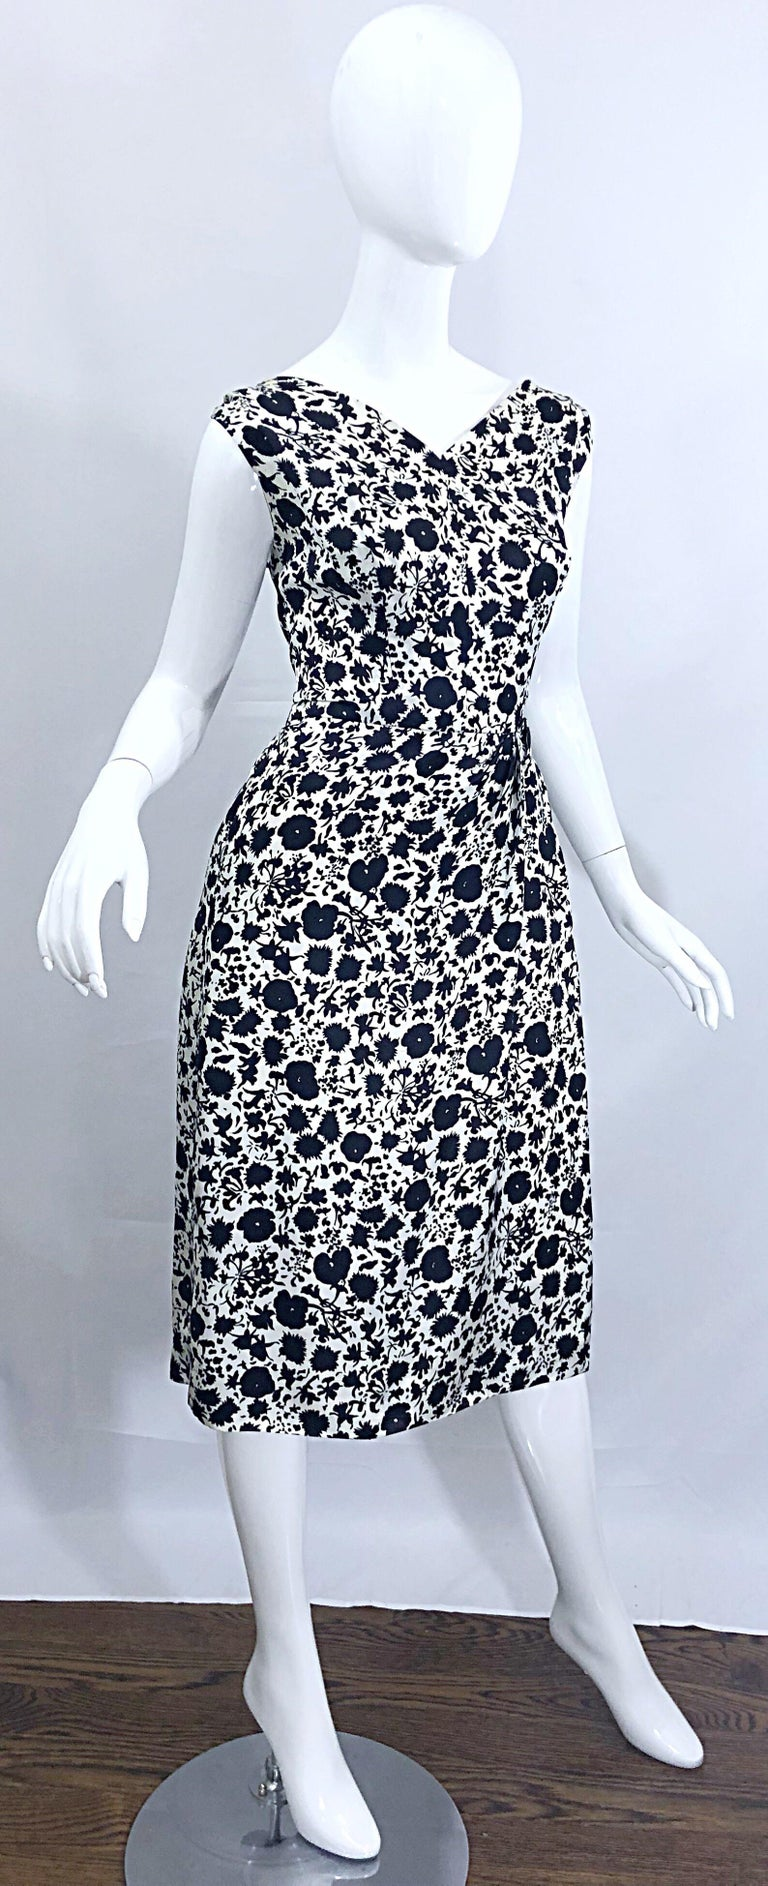 Women's 1950s House of Branell Black and White Silk Floral Vintage 50s Wrap Dress For Sale